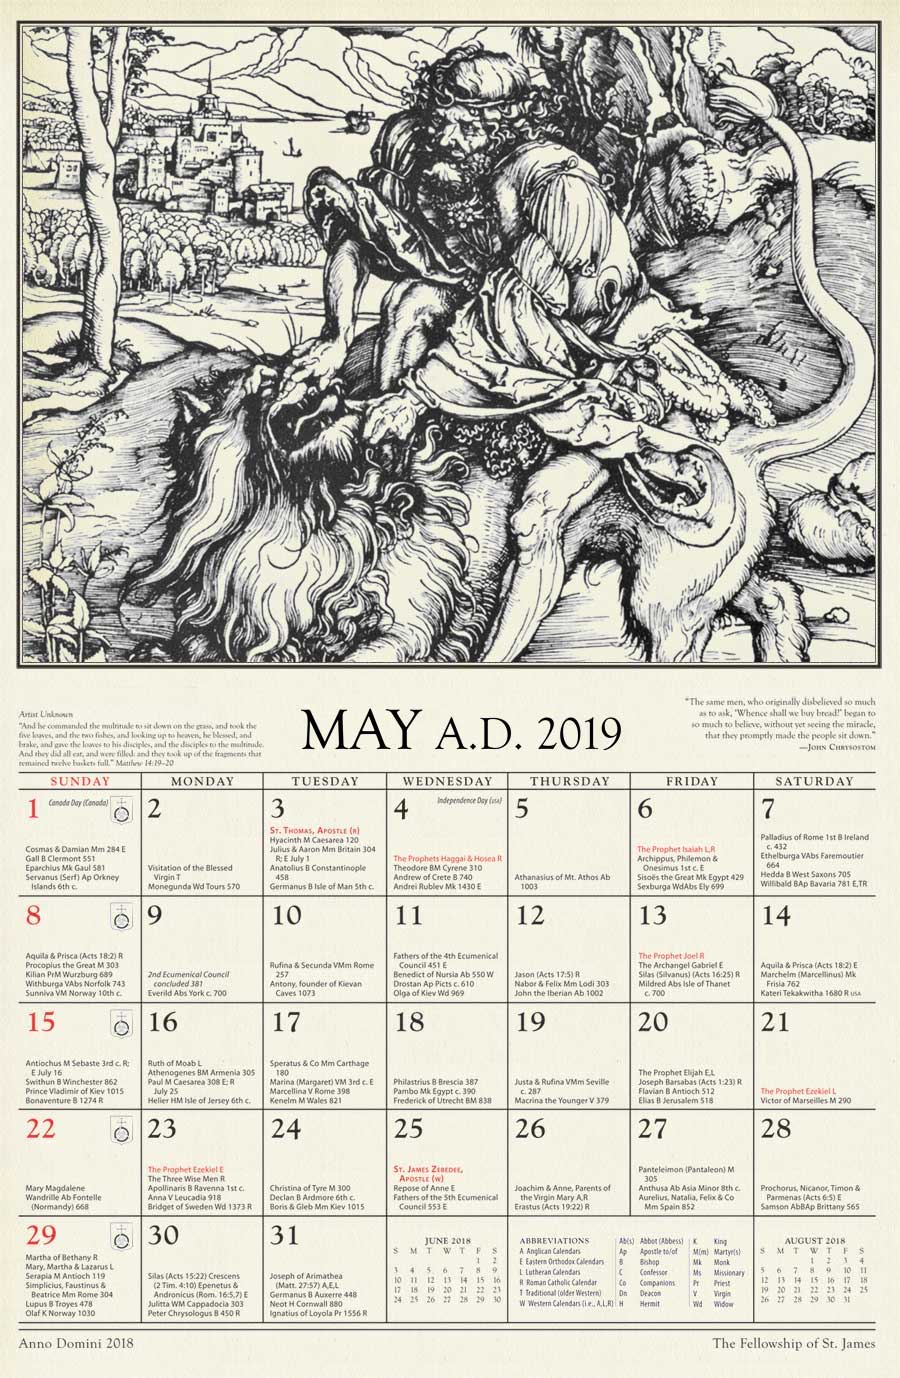 anno domini 2019 the st james calendar of the christian year is